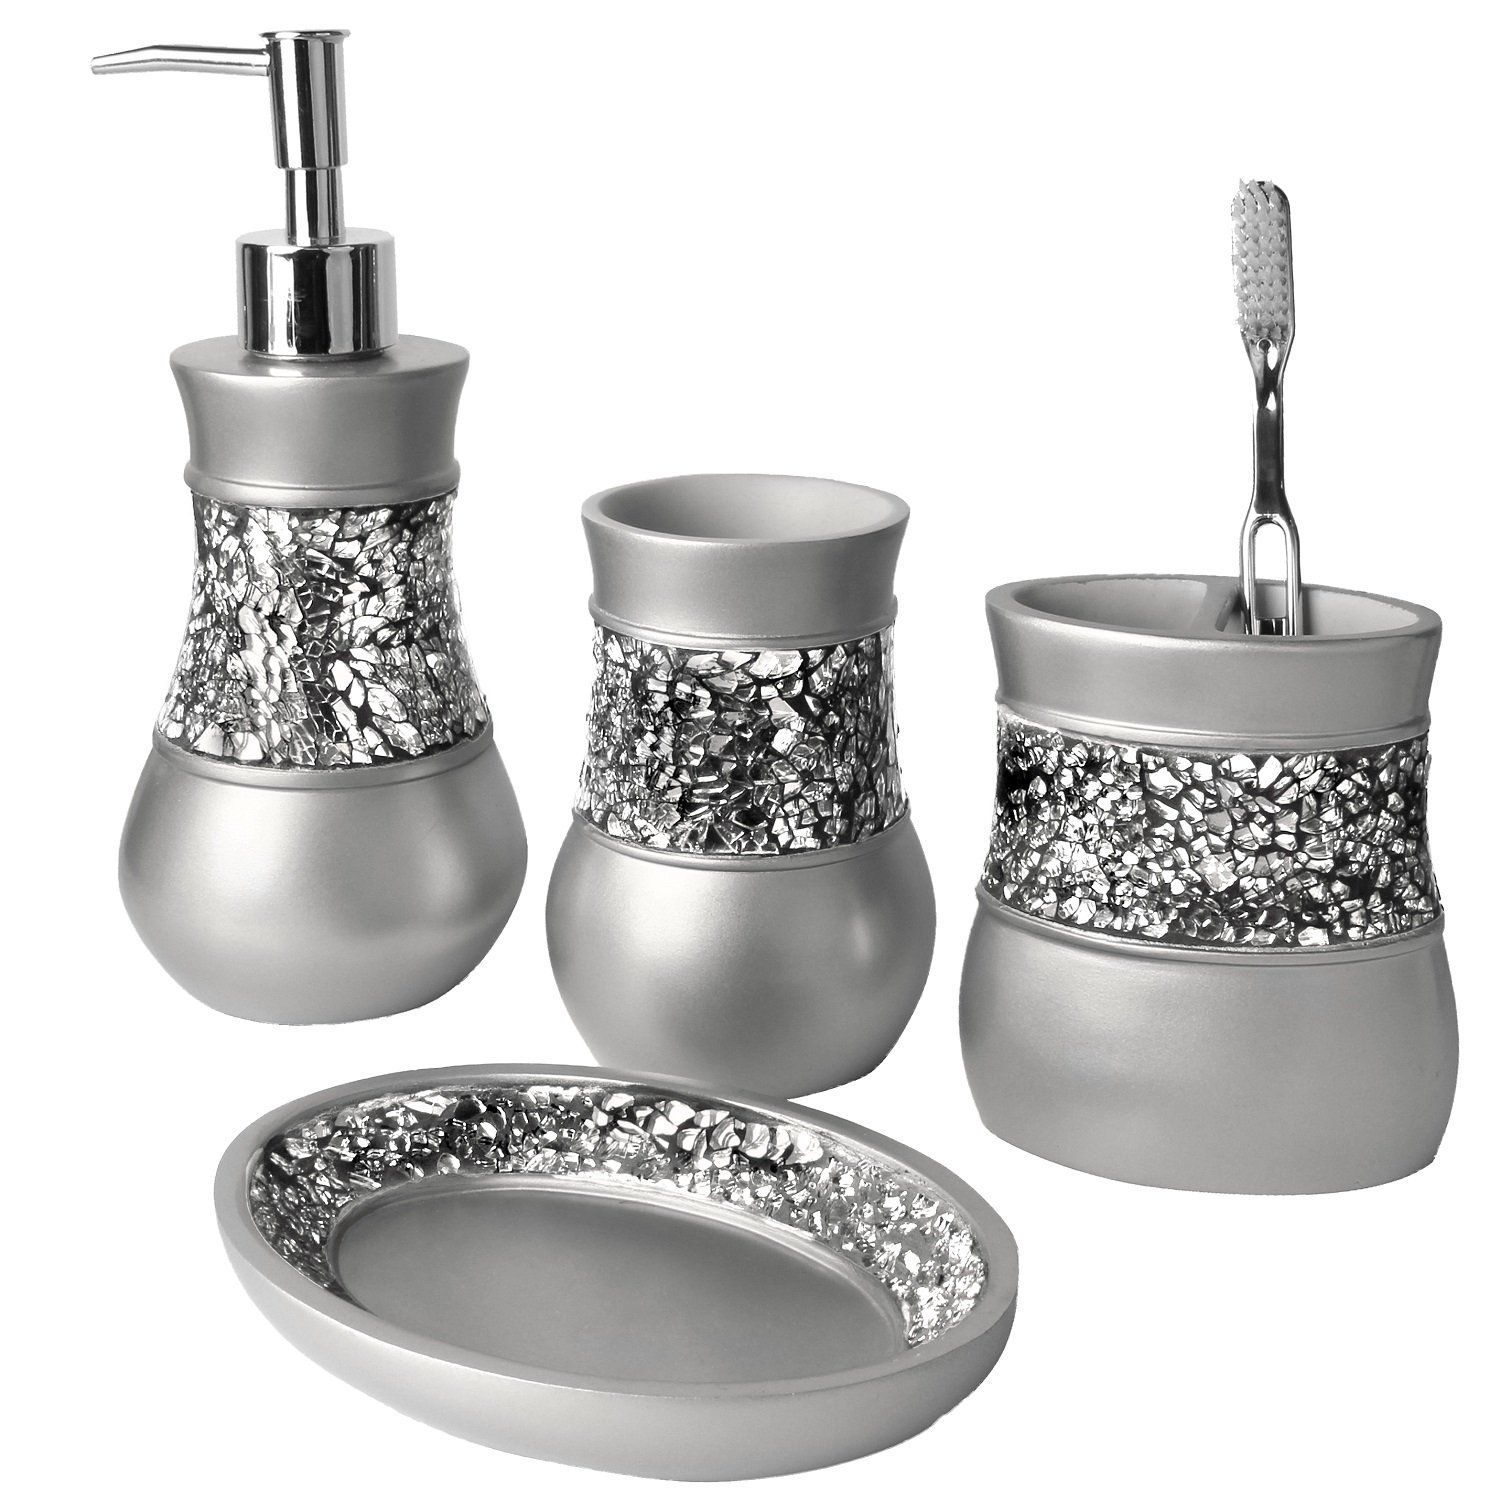 creative scents brushed nickel bath ensemble, 4 piece bathroom